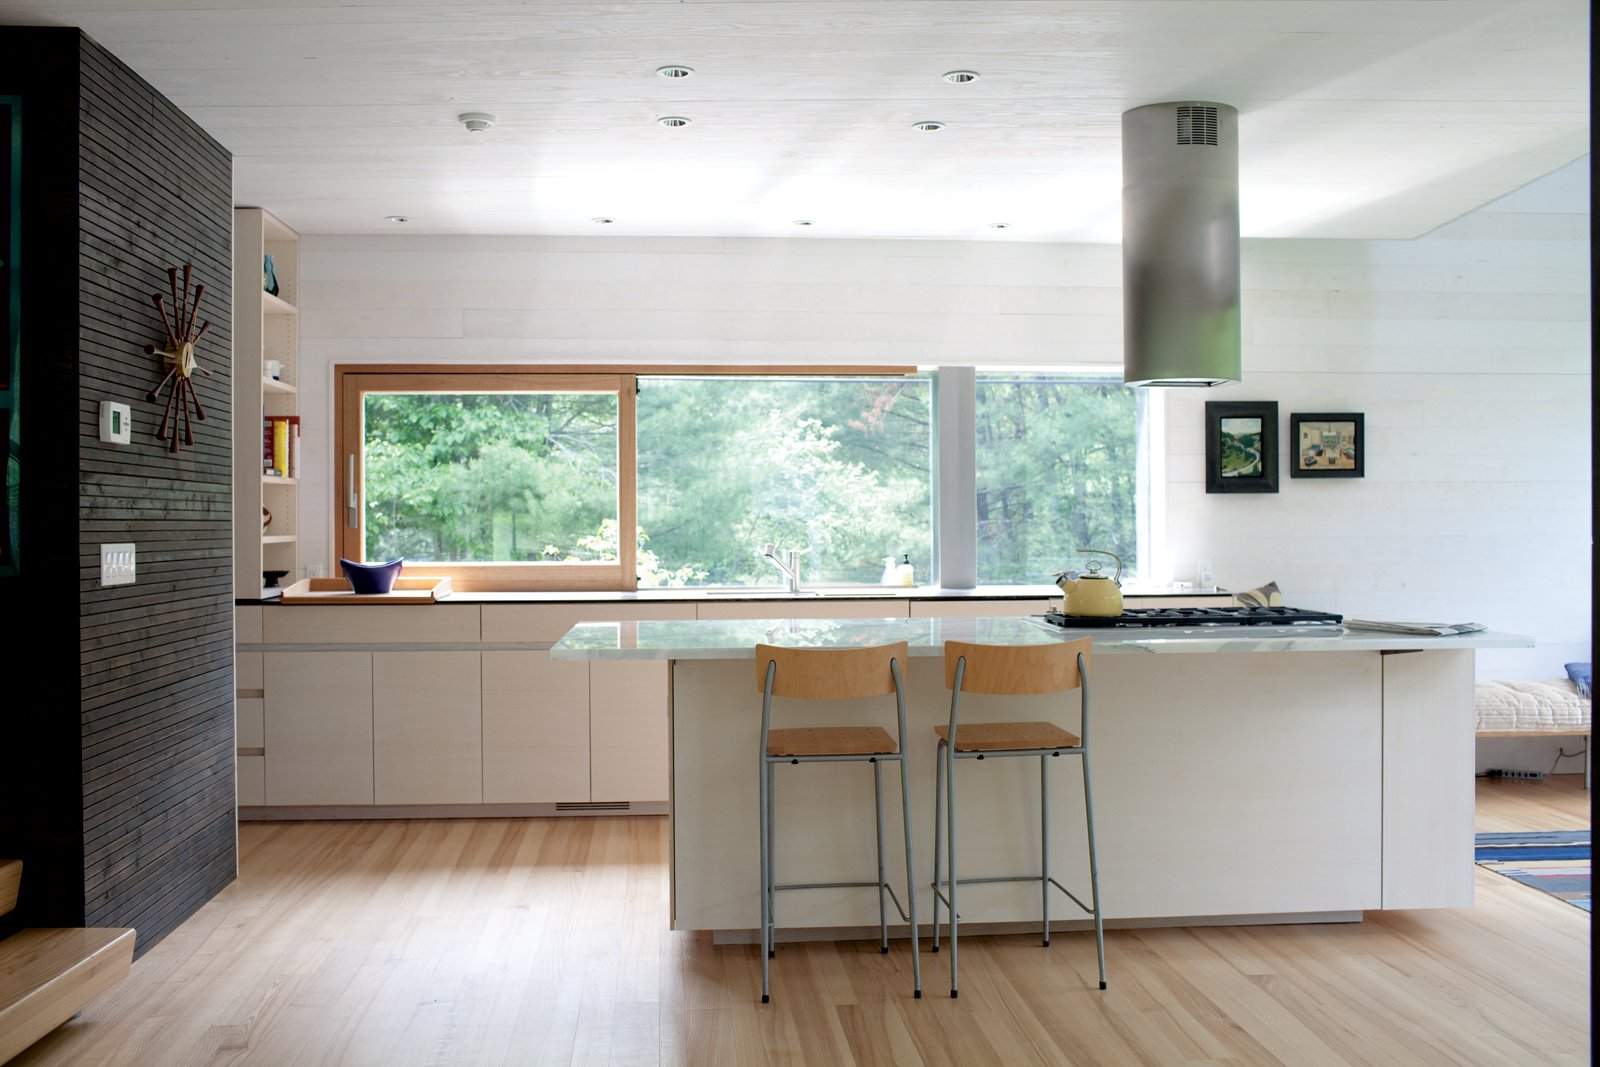 ash kitchen cabinets In the kitchen a Sirius range hood hovers over a Wolf cooktop The bleached